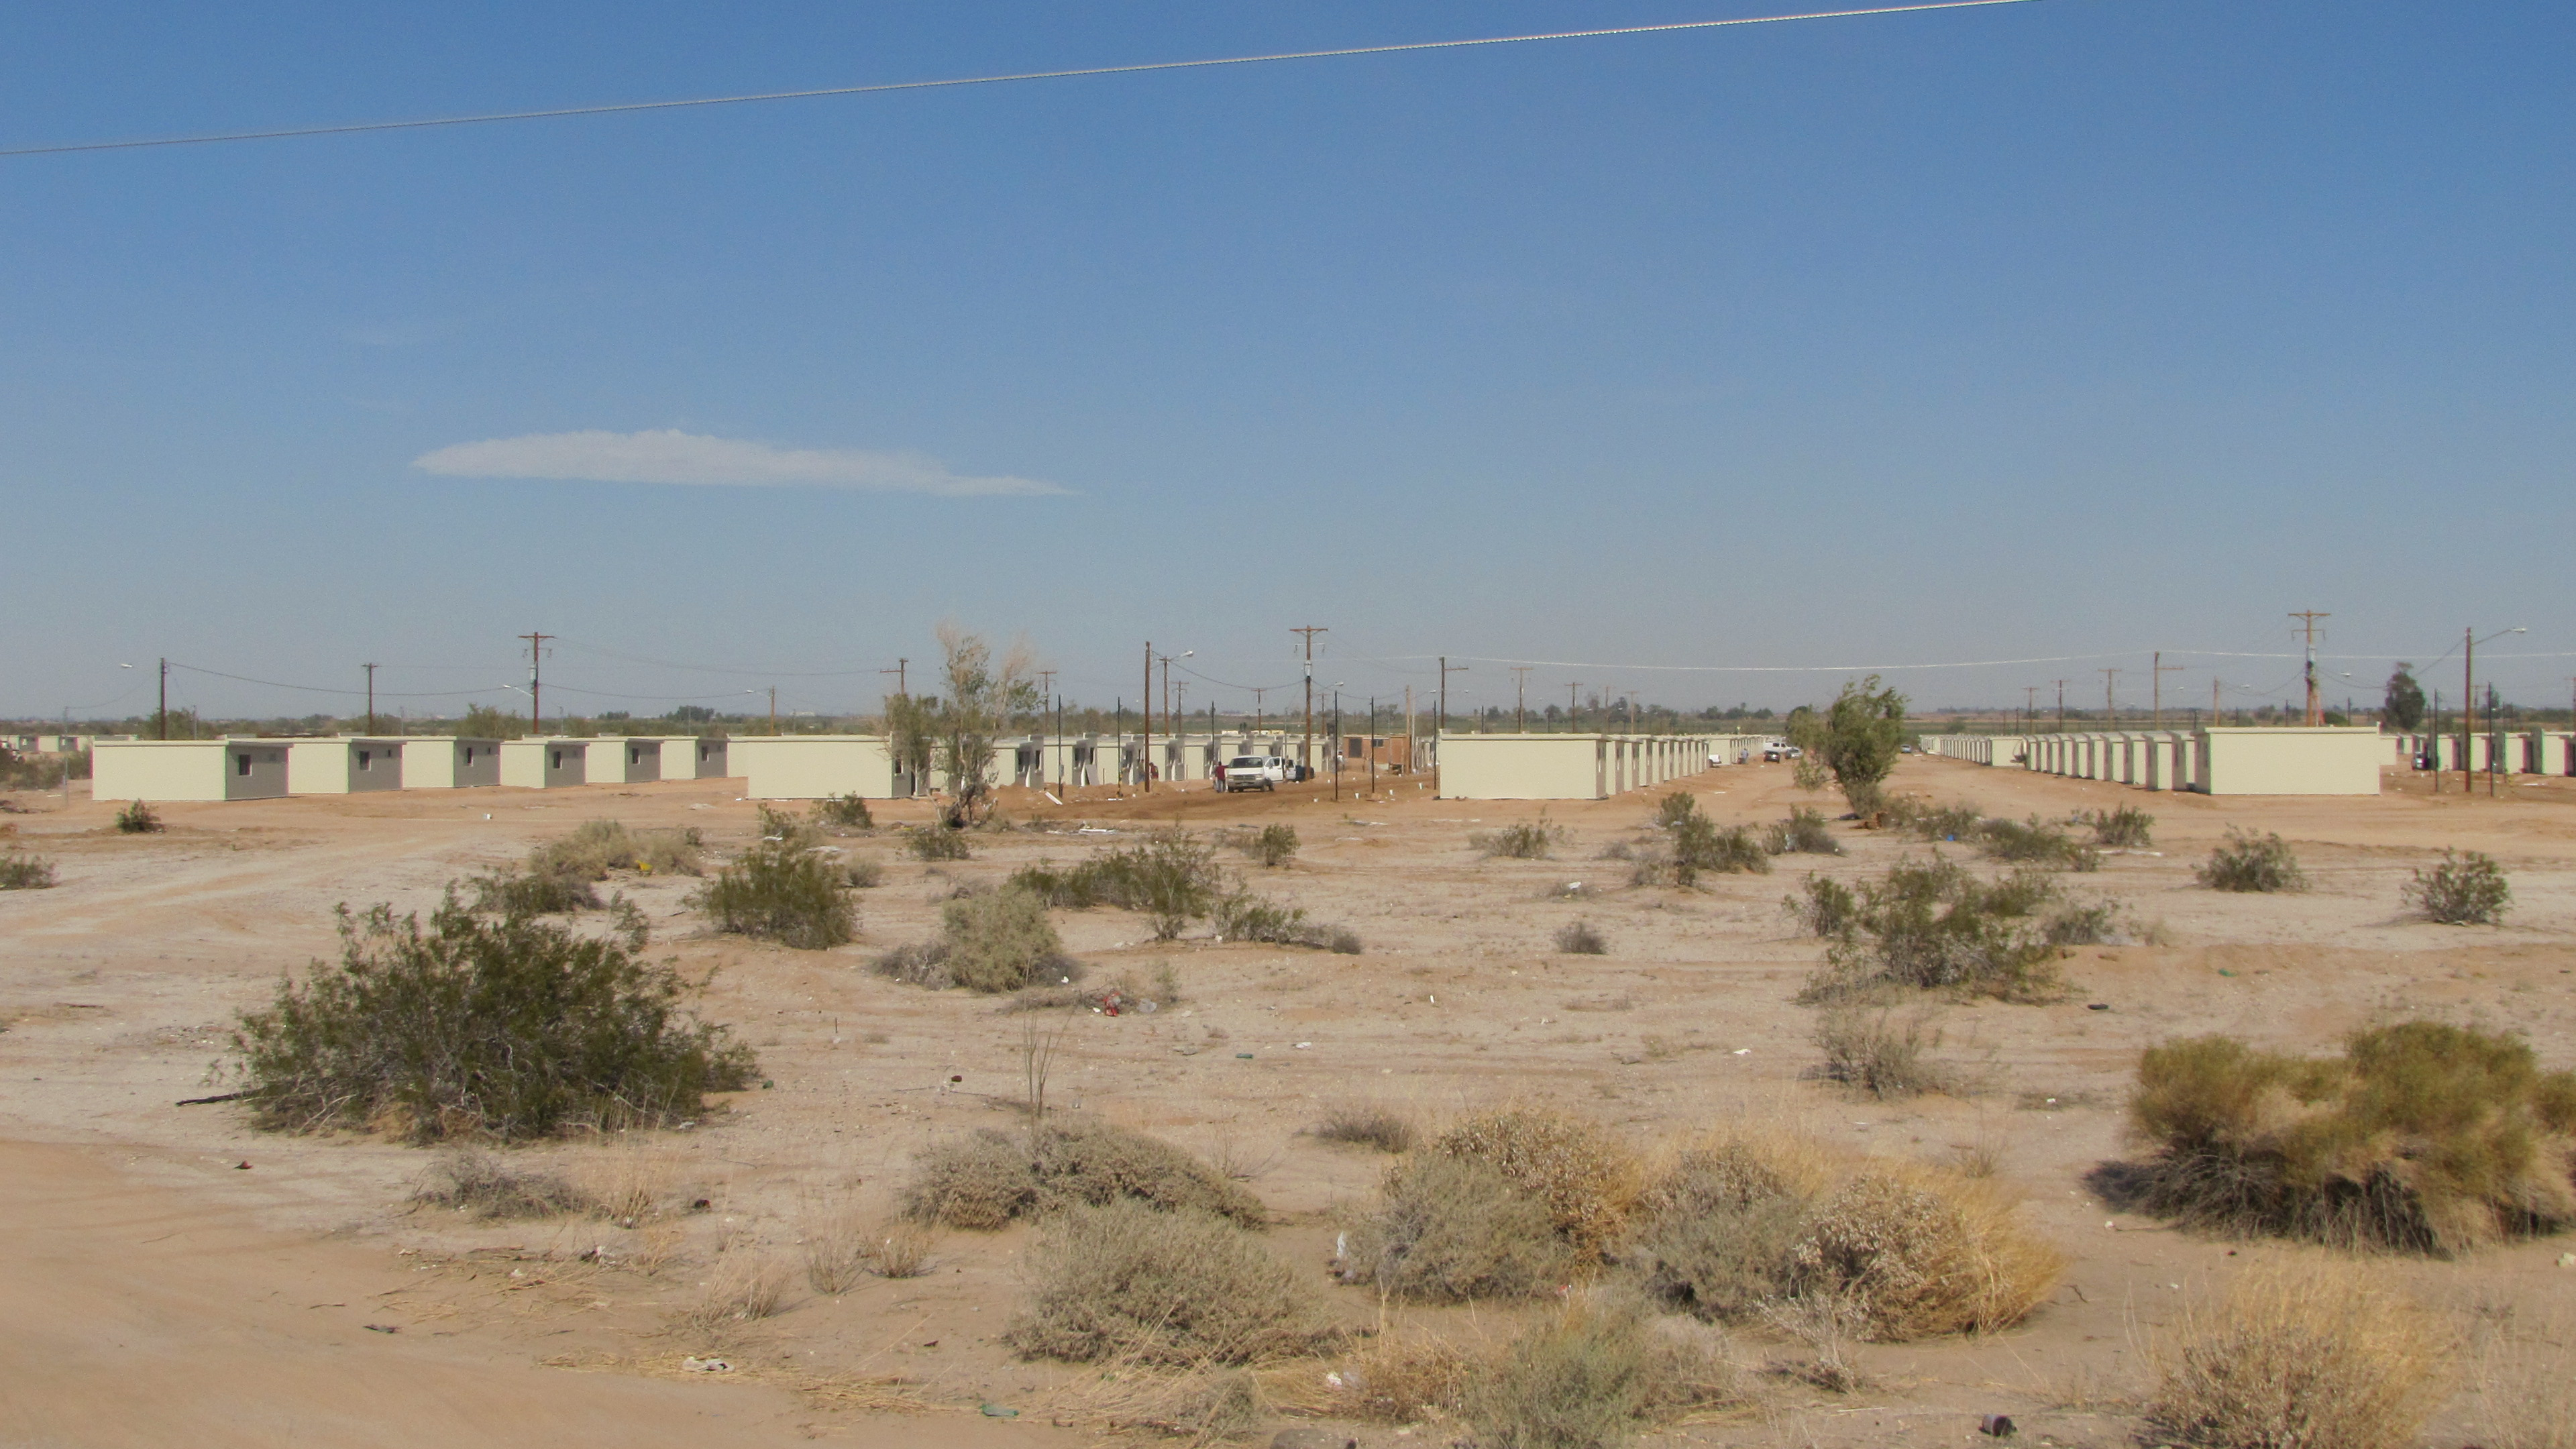 Government housing sits along the side of highway in Mexicali. Government officials say they've built 3,700 homes and have 300 more to go for people who lost their homes in the Easter earthquake on April 4, 2010.